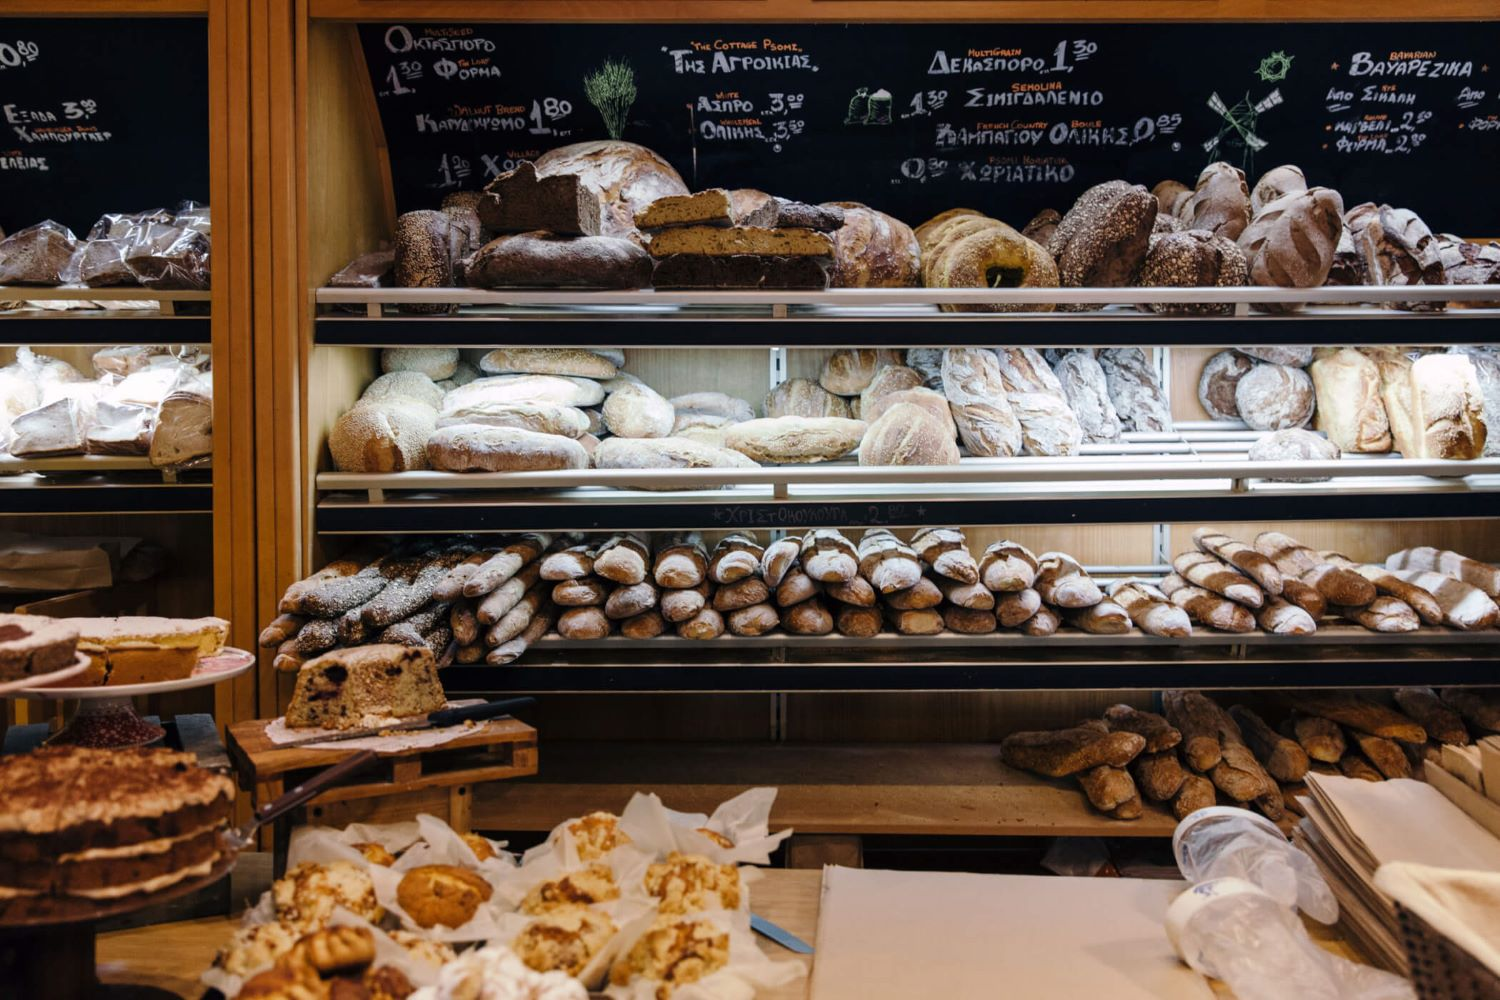 To all the bread lovers: here you will find a big selection of around 30 different kinds of bread to choose from. Photo source: traveltoathens.eu